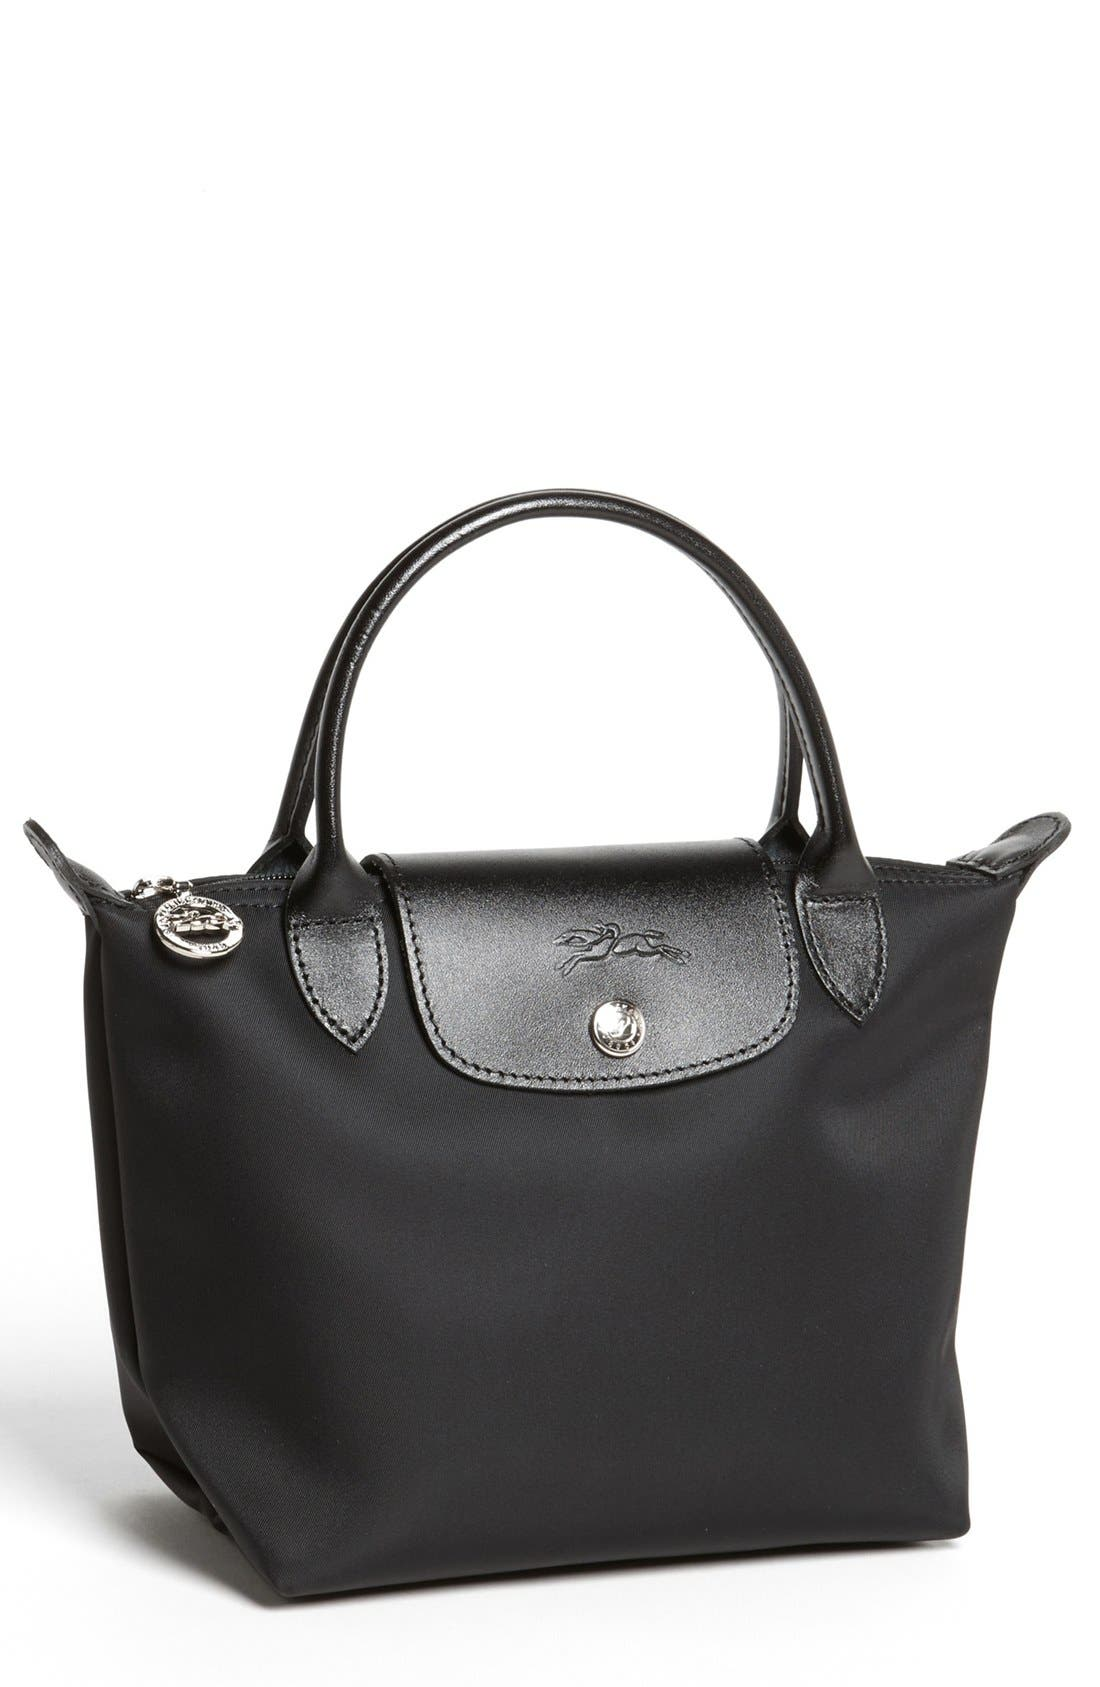 Alternate Image 1 Selected - Longchamp 'Deposé - Mini' Bag